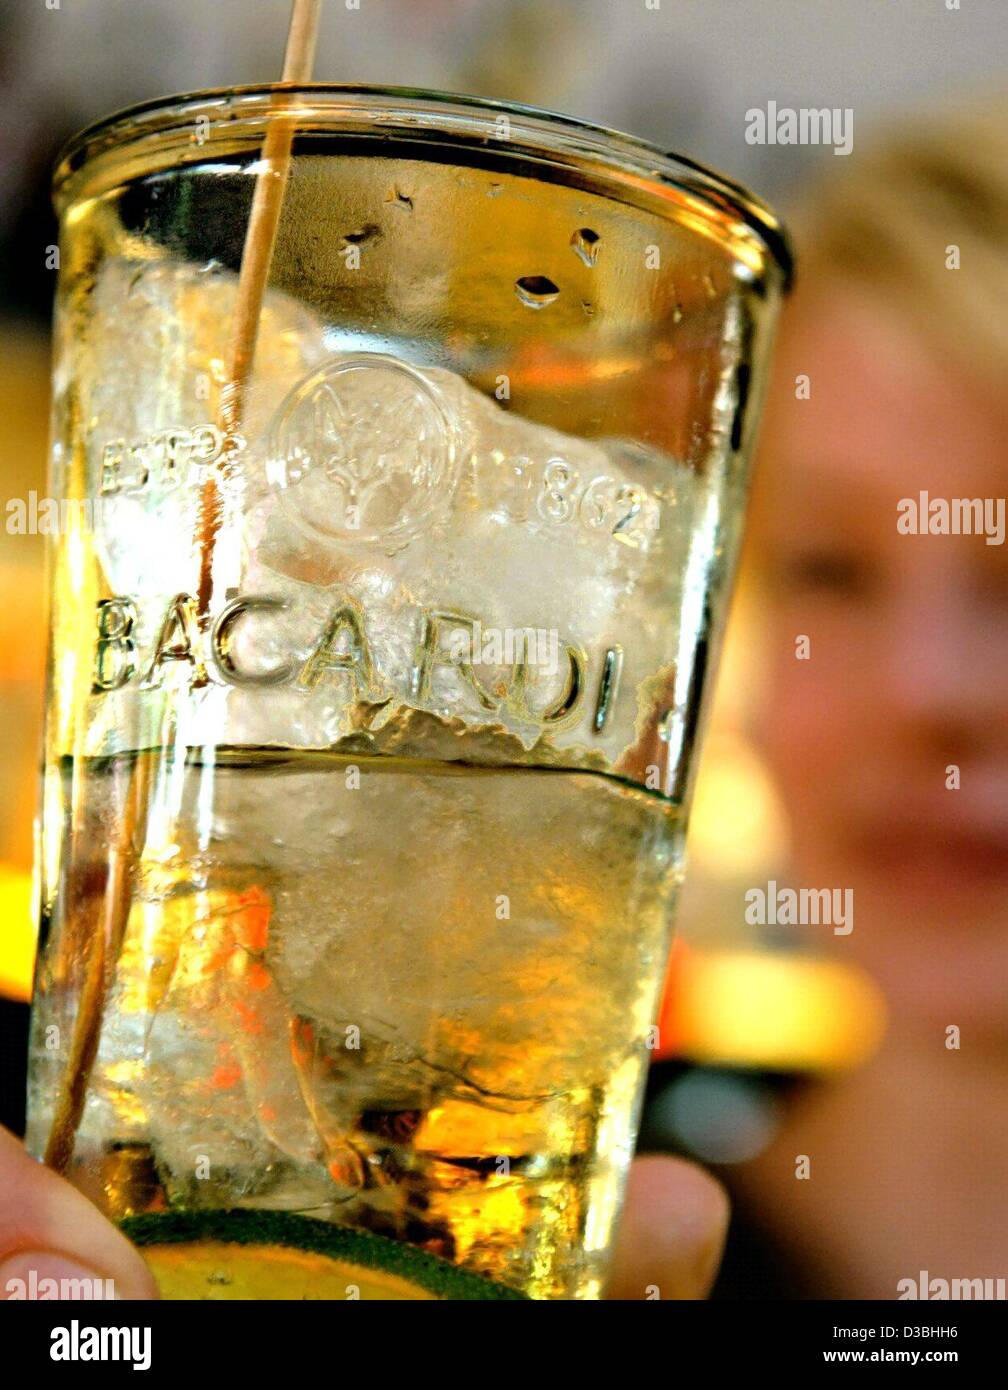 (dpa) - A waitress serves a glass of Bacardi rum on ice with a slice of lemon in the 'zwo11' bar in Hamburg, - Stock Image